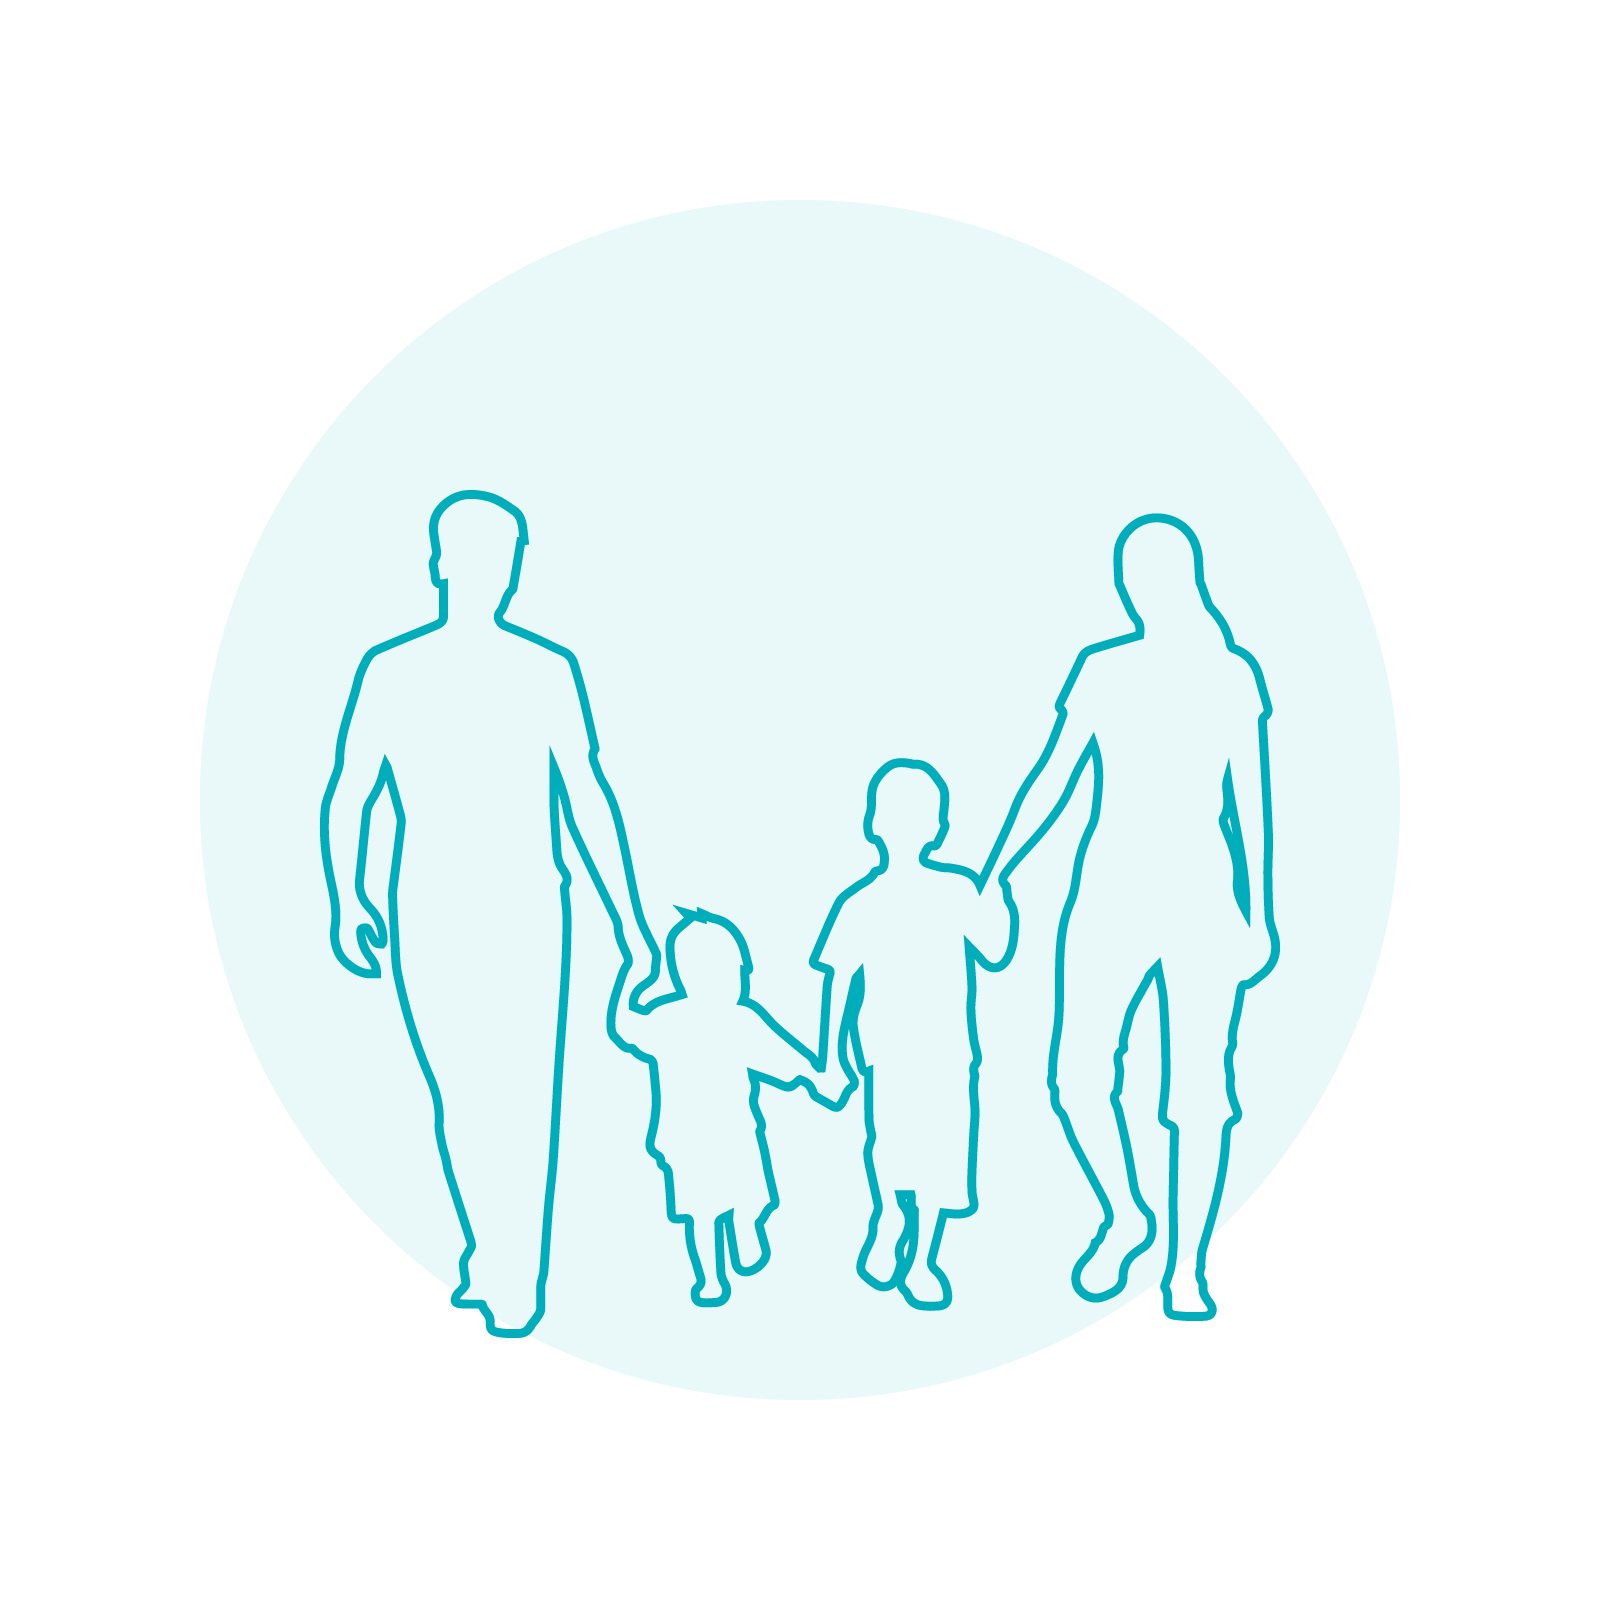 icon-keep-families@2x.png